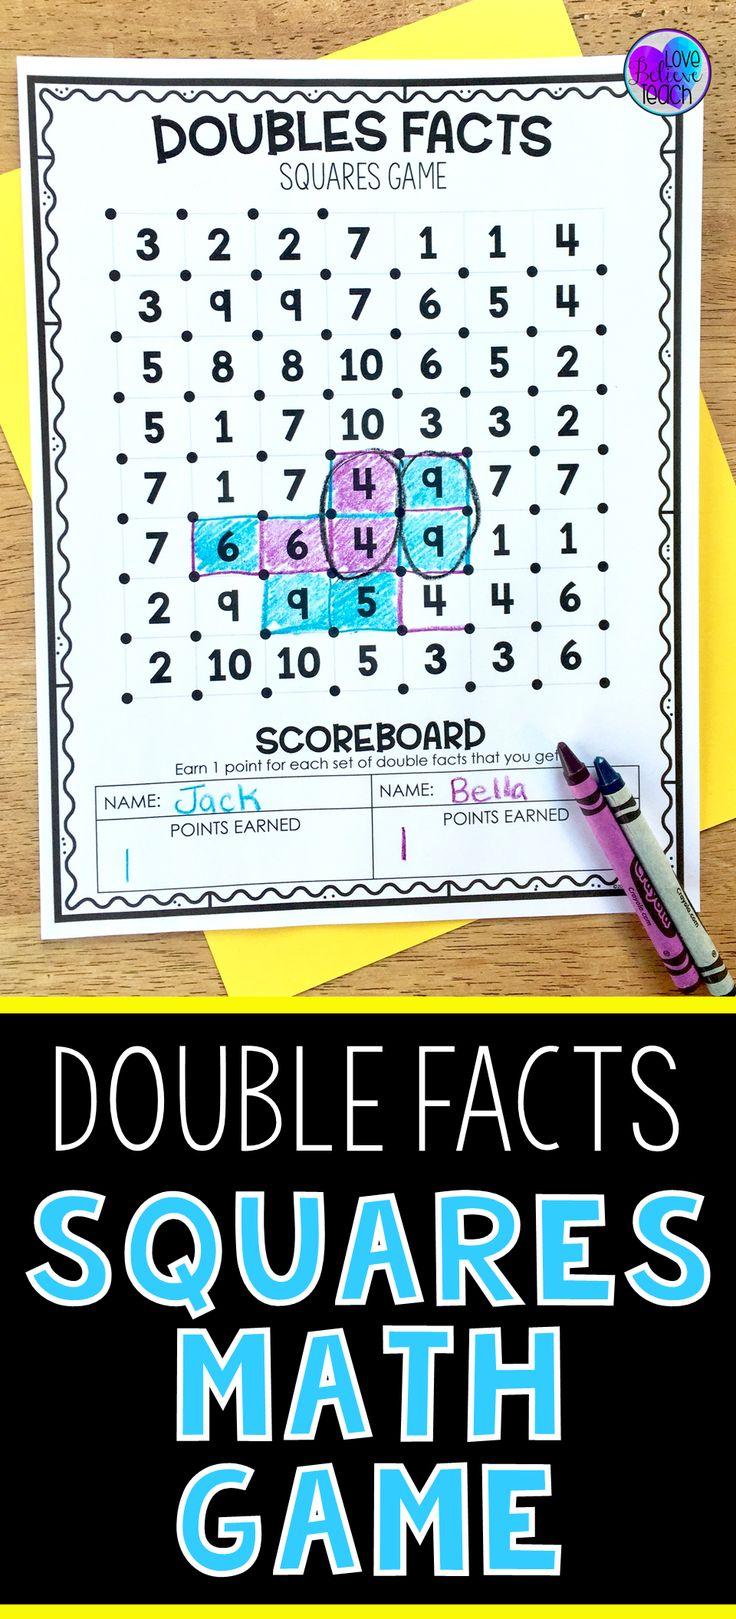 Help improve your first grade and second grade students' fact fluency by practicing double facts with this fun game. Just add it into your math rotations, math centers, Friday Fun Day, or have it available for your fast finishers. Double Facts Squares Math Game- is a simple activity to learn yet fun to play again and again.